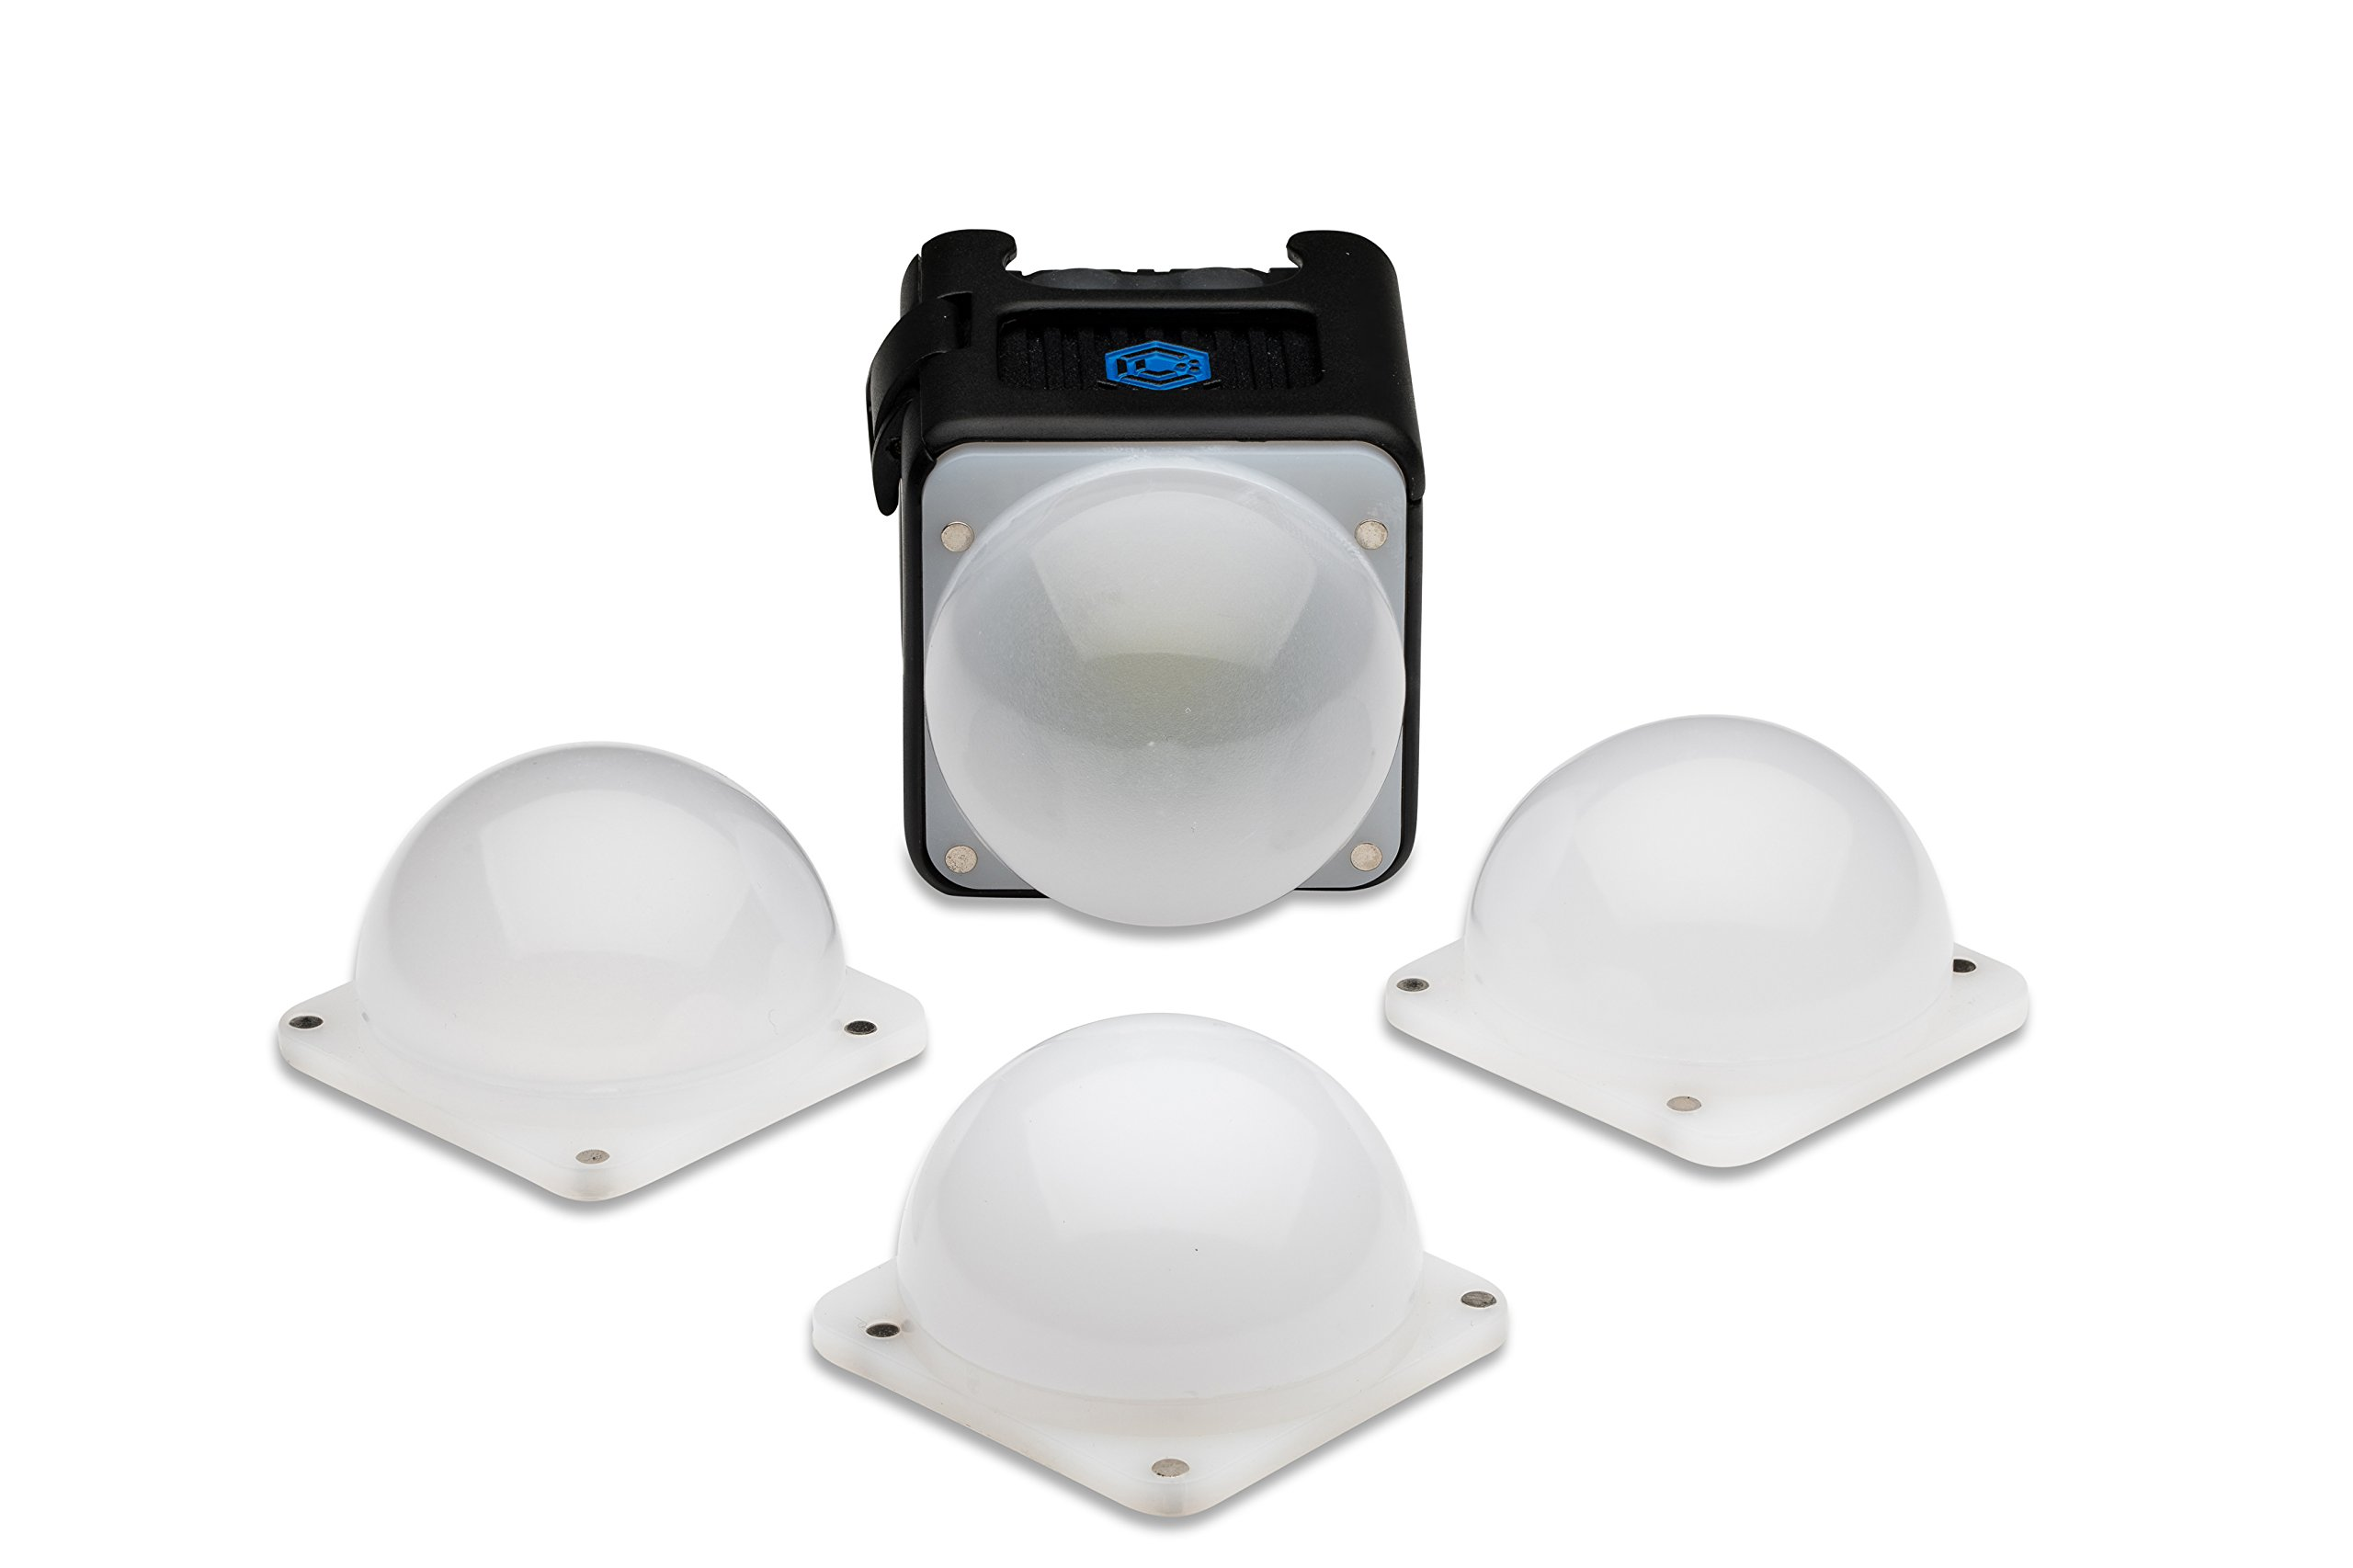 Lume Cube - Diffusion Bulb Pack for Light-House (Includes 4 Diffusion Bulbs) by LUME CUBE